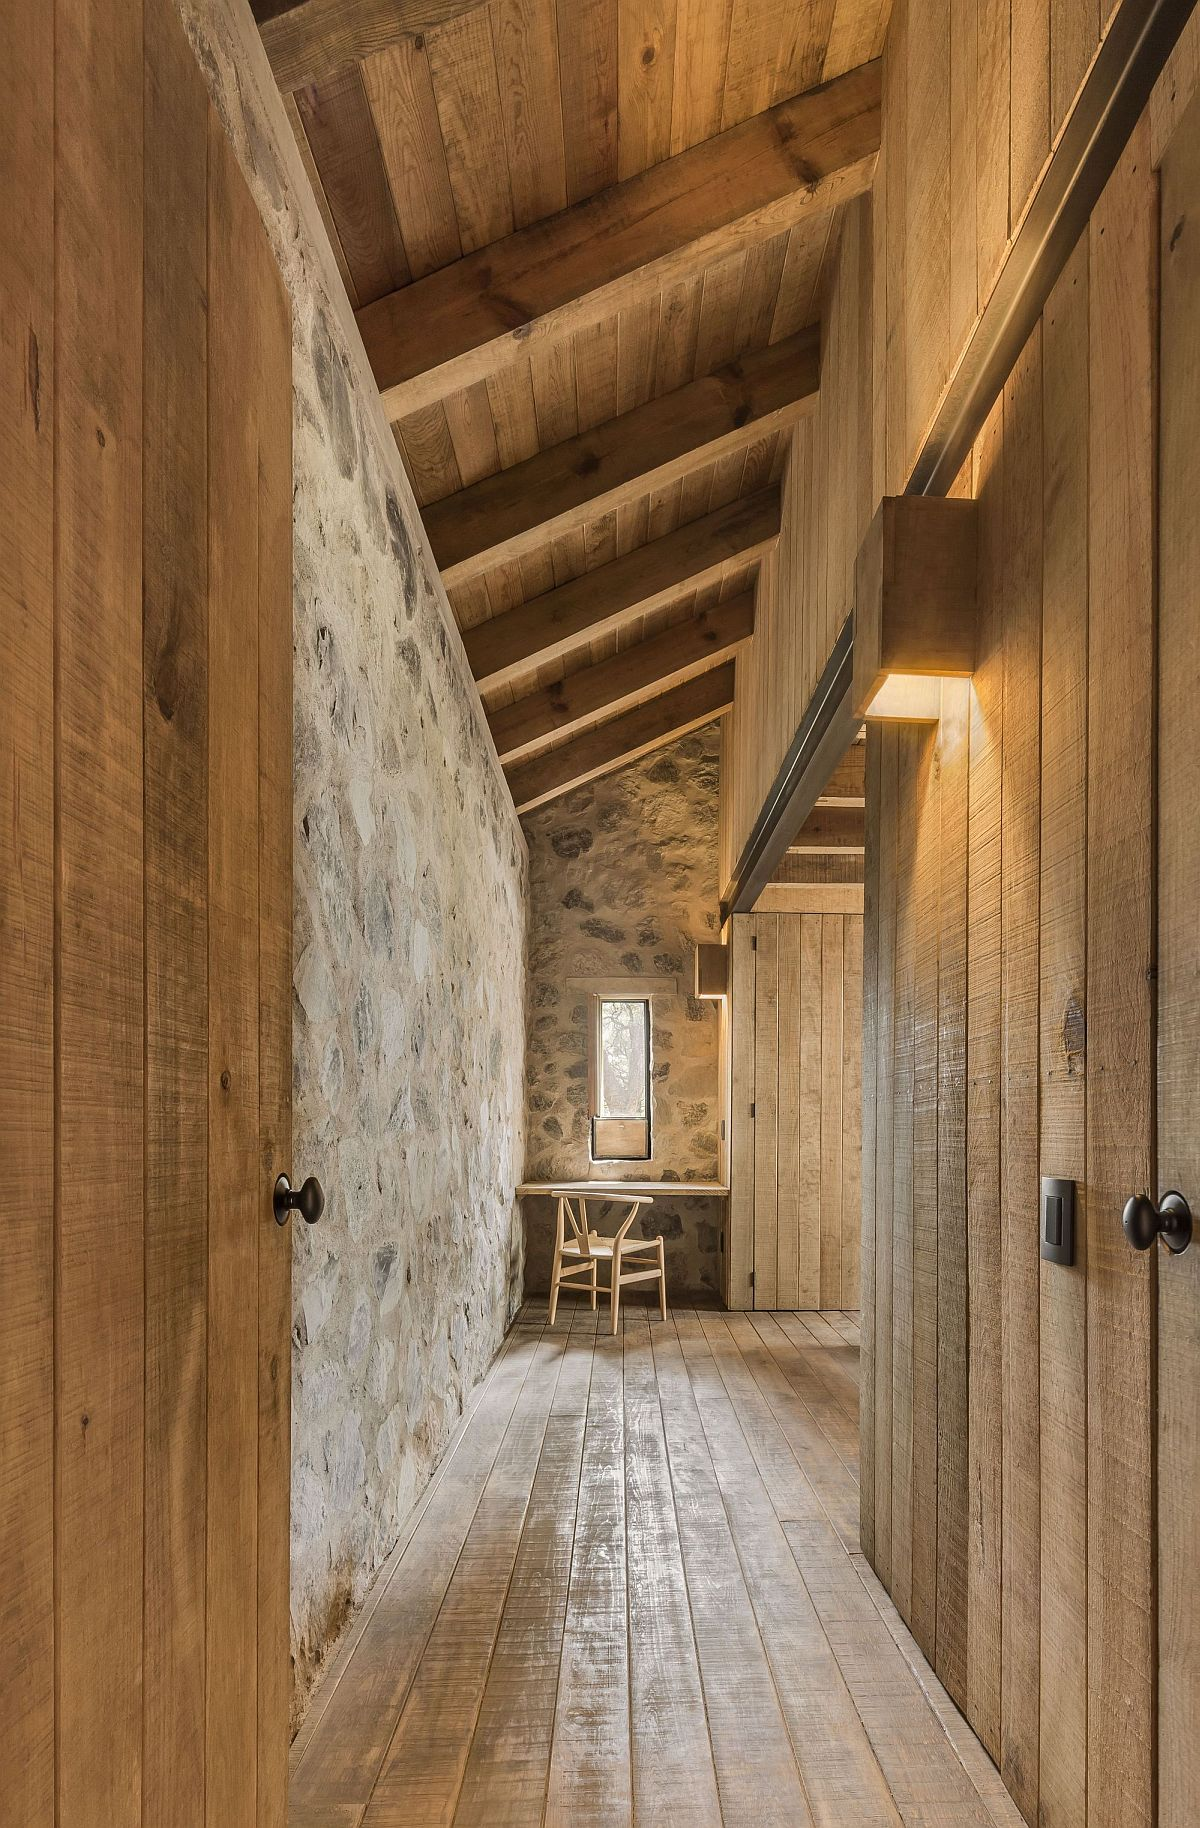 Long-corridors-inside-the-cabin-with-wooden-walls-and-cabinets-connecting-various-rooms-58109